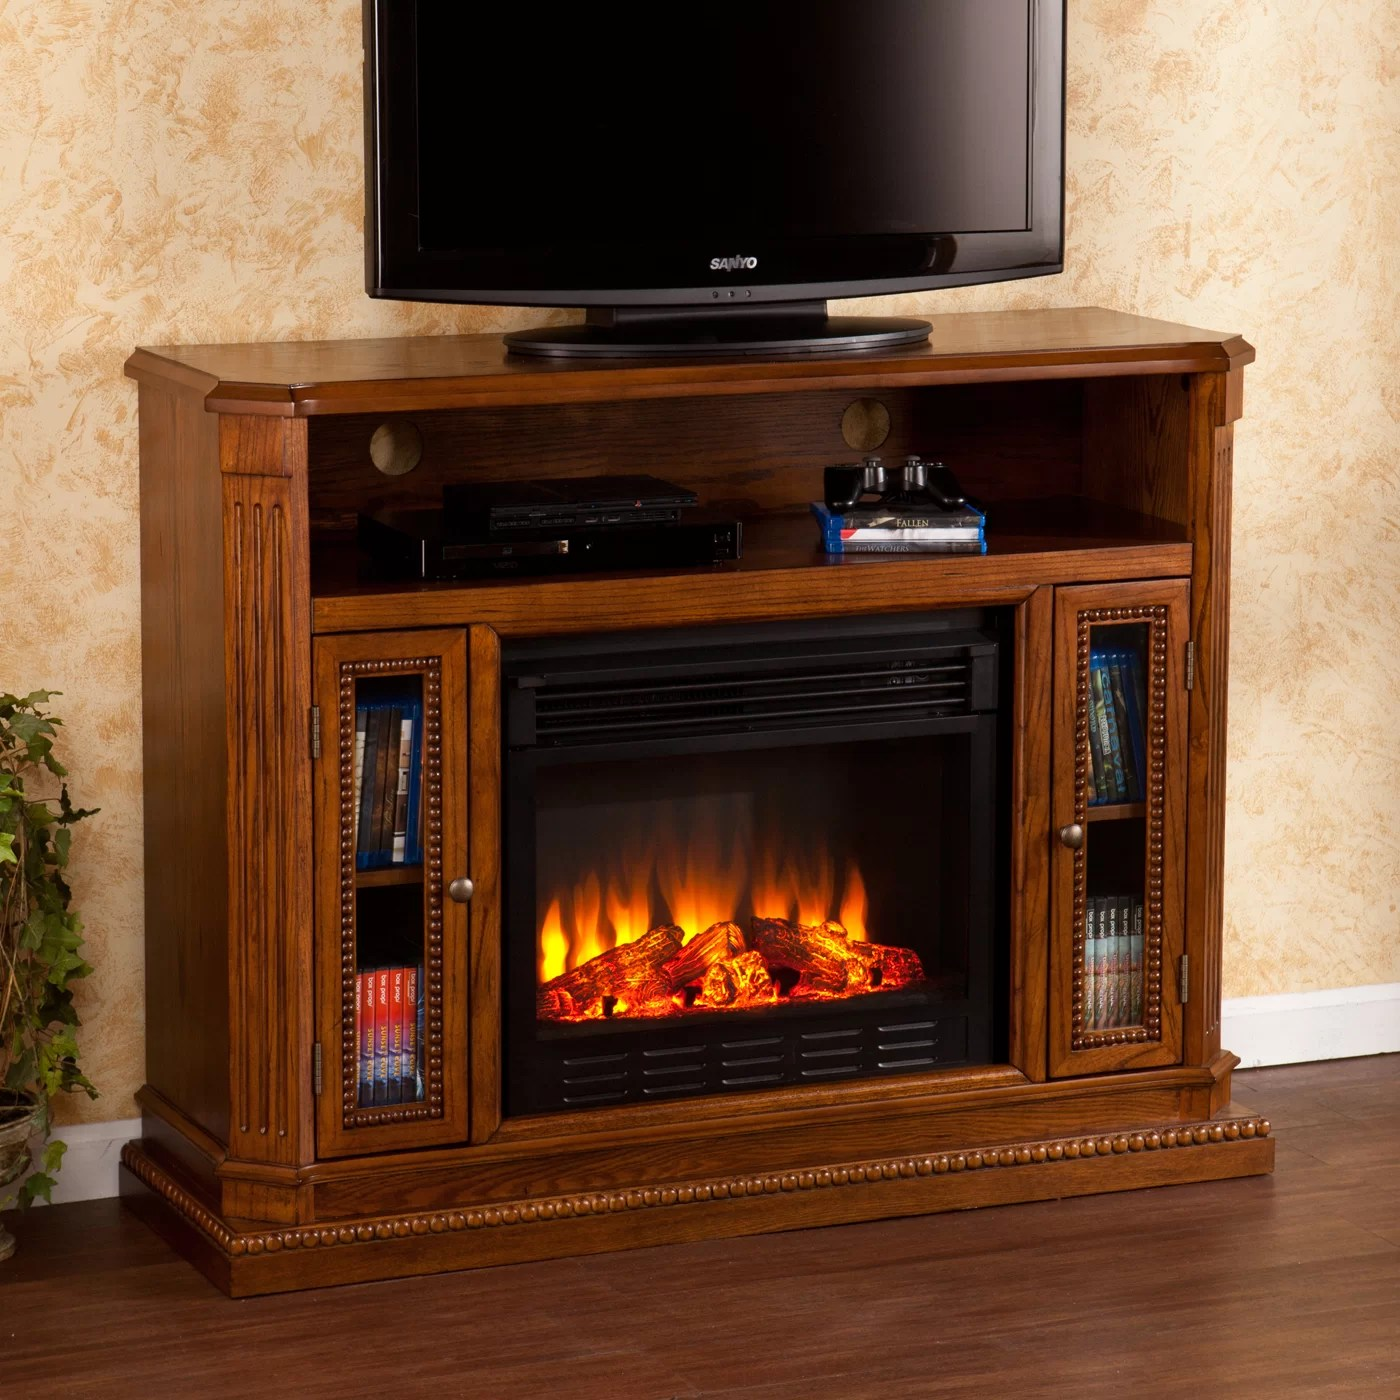 Wildon Home  Delaney TV Stand with Electric Fireplace  Reviews  Wayfair